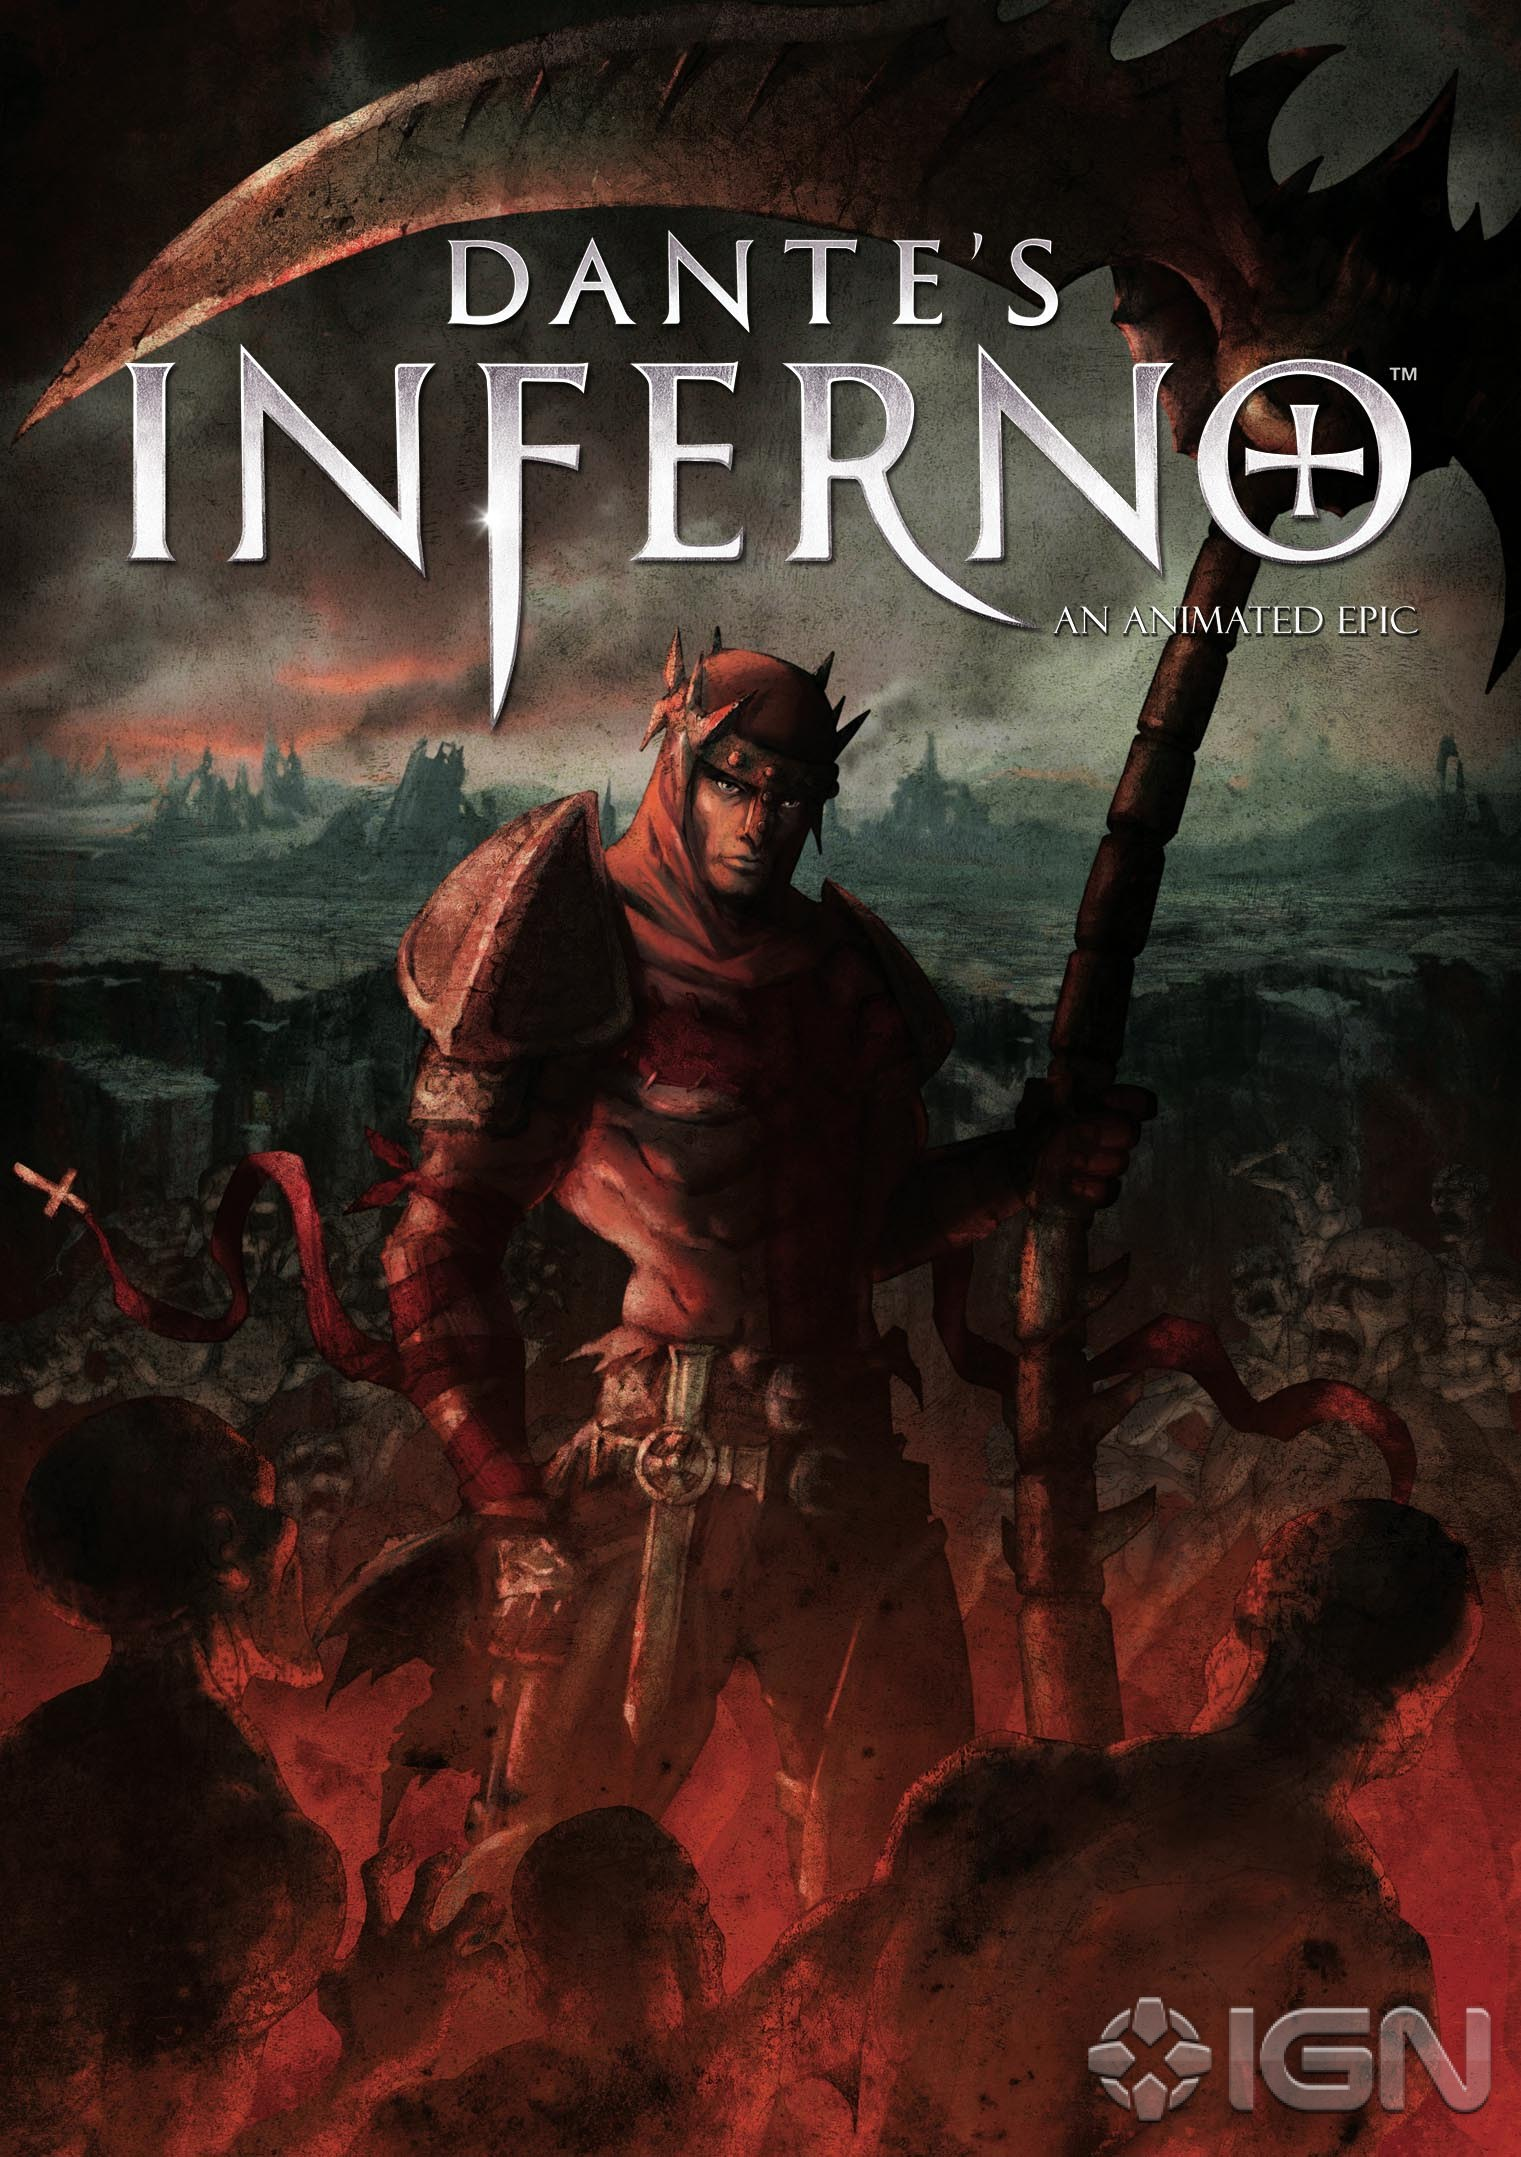 dontes inferno The best place to get cheats, codes, cheat codes, walkthrough, guide, faq, unlockables, achievements, and secrets for dante's inferno for xbox 360.